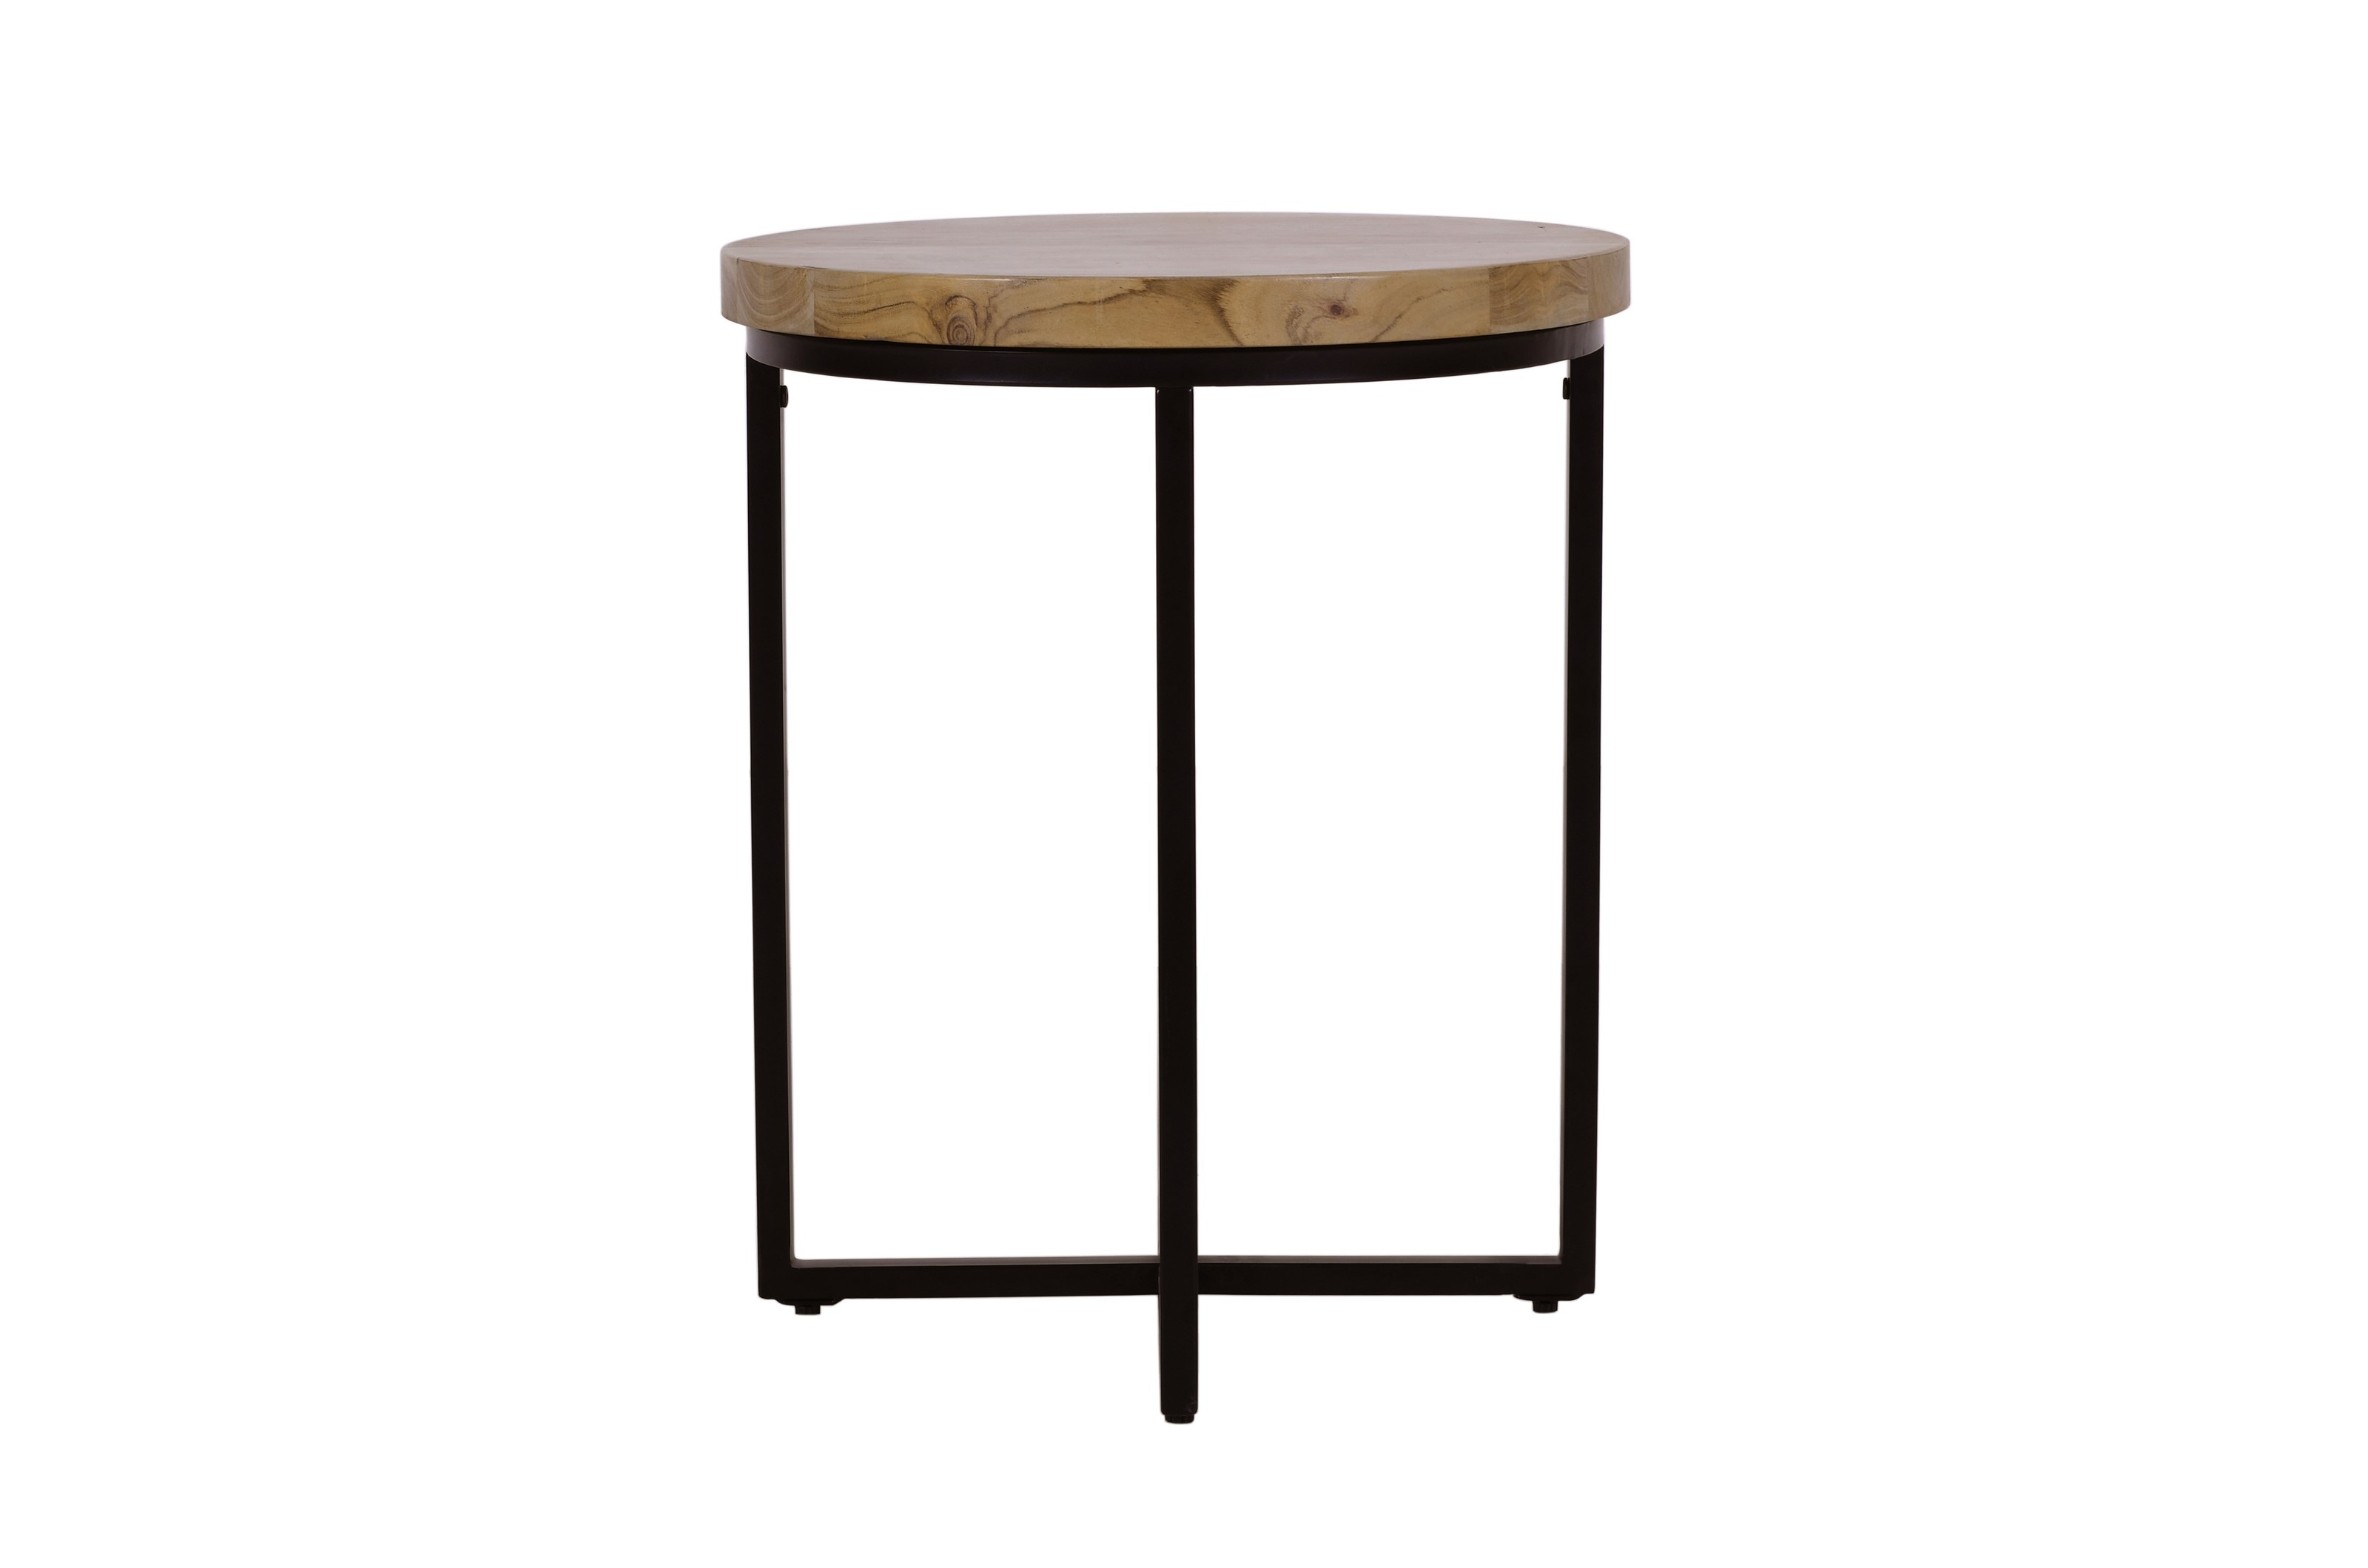 Ames Round End Table by Jofran at Home Furnishings Direct